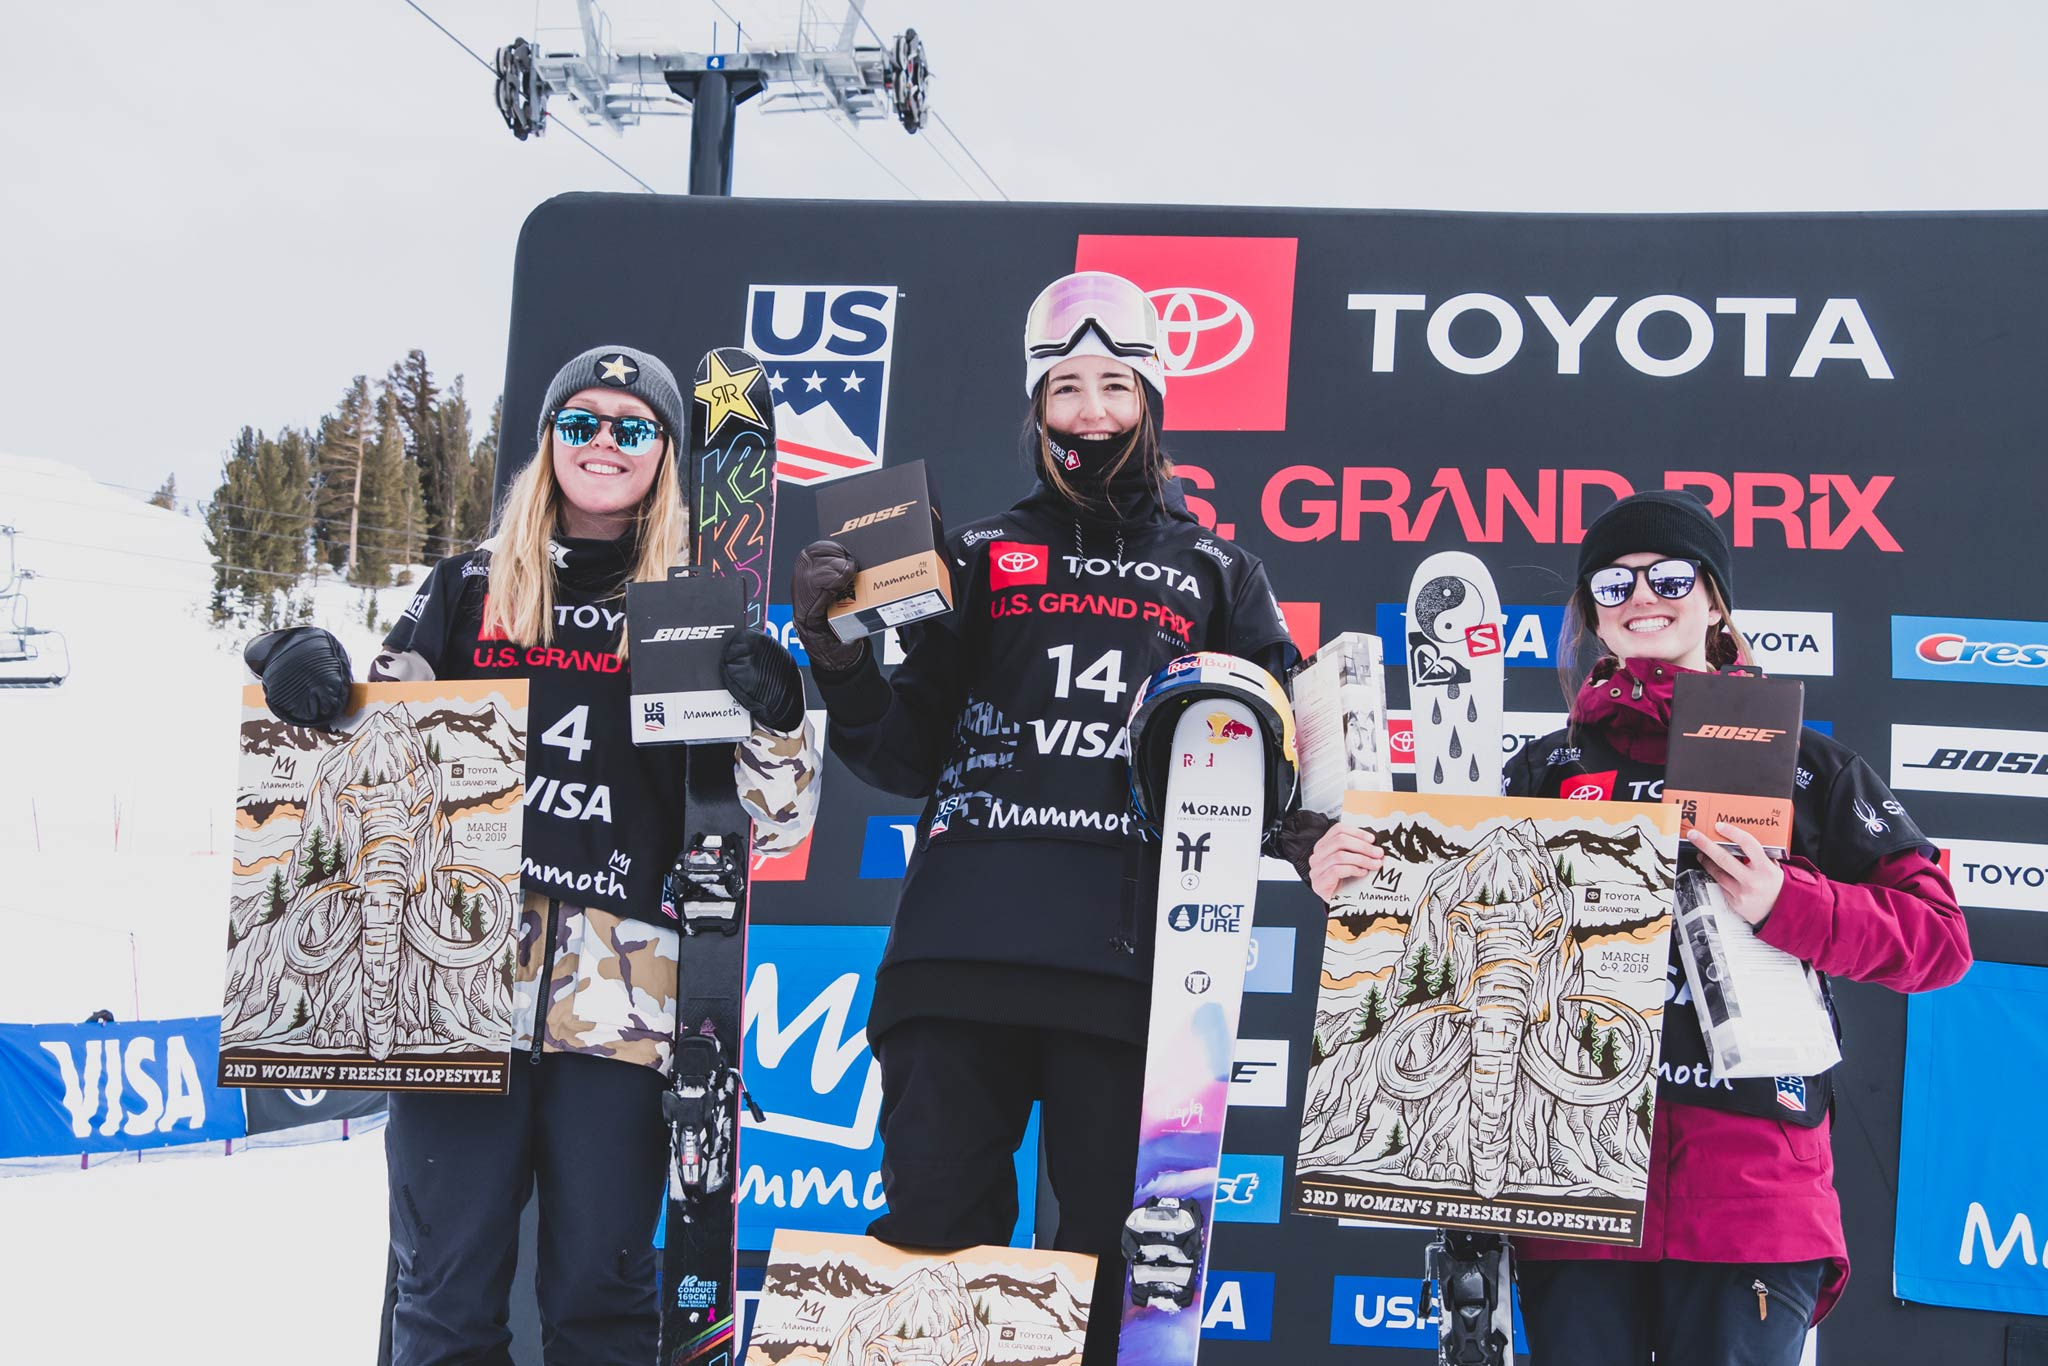 Die drei besten Frauen beim FIS Freestyle Slopestyle World Cup 18/19 in Mammoth Mountain (USA): Johanne Killi (NOR) - Mathilde Gremaud (SUI), Megan Oldham (CAN) - Foto: FIS Freestyle